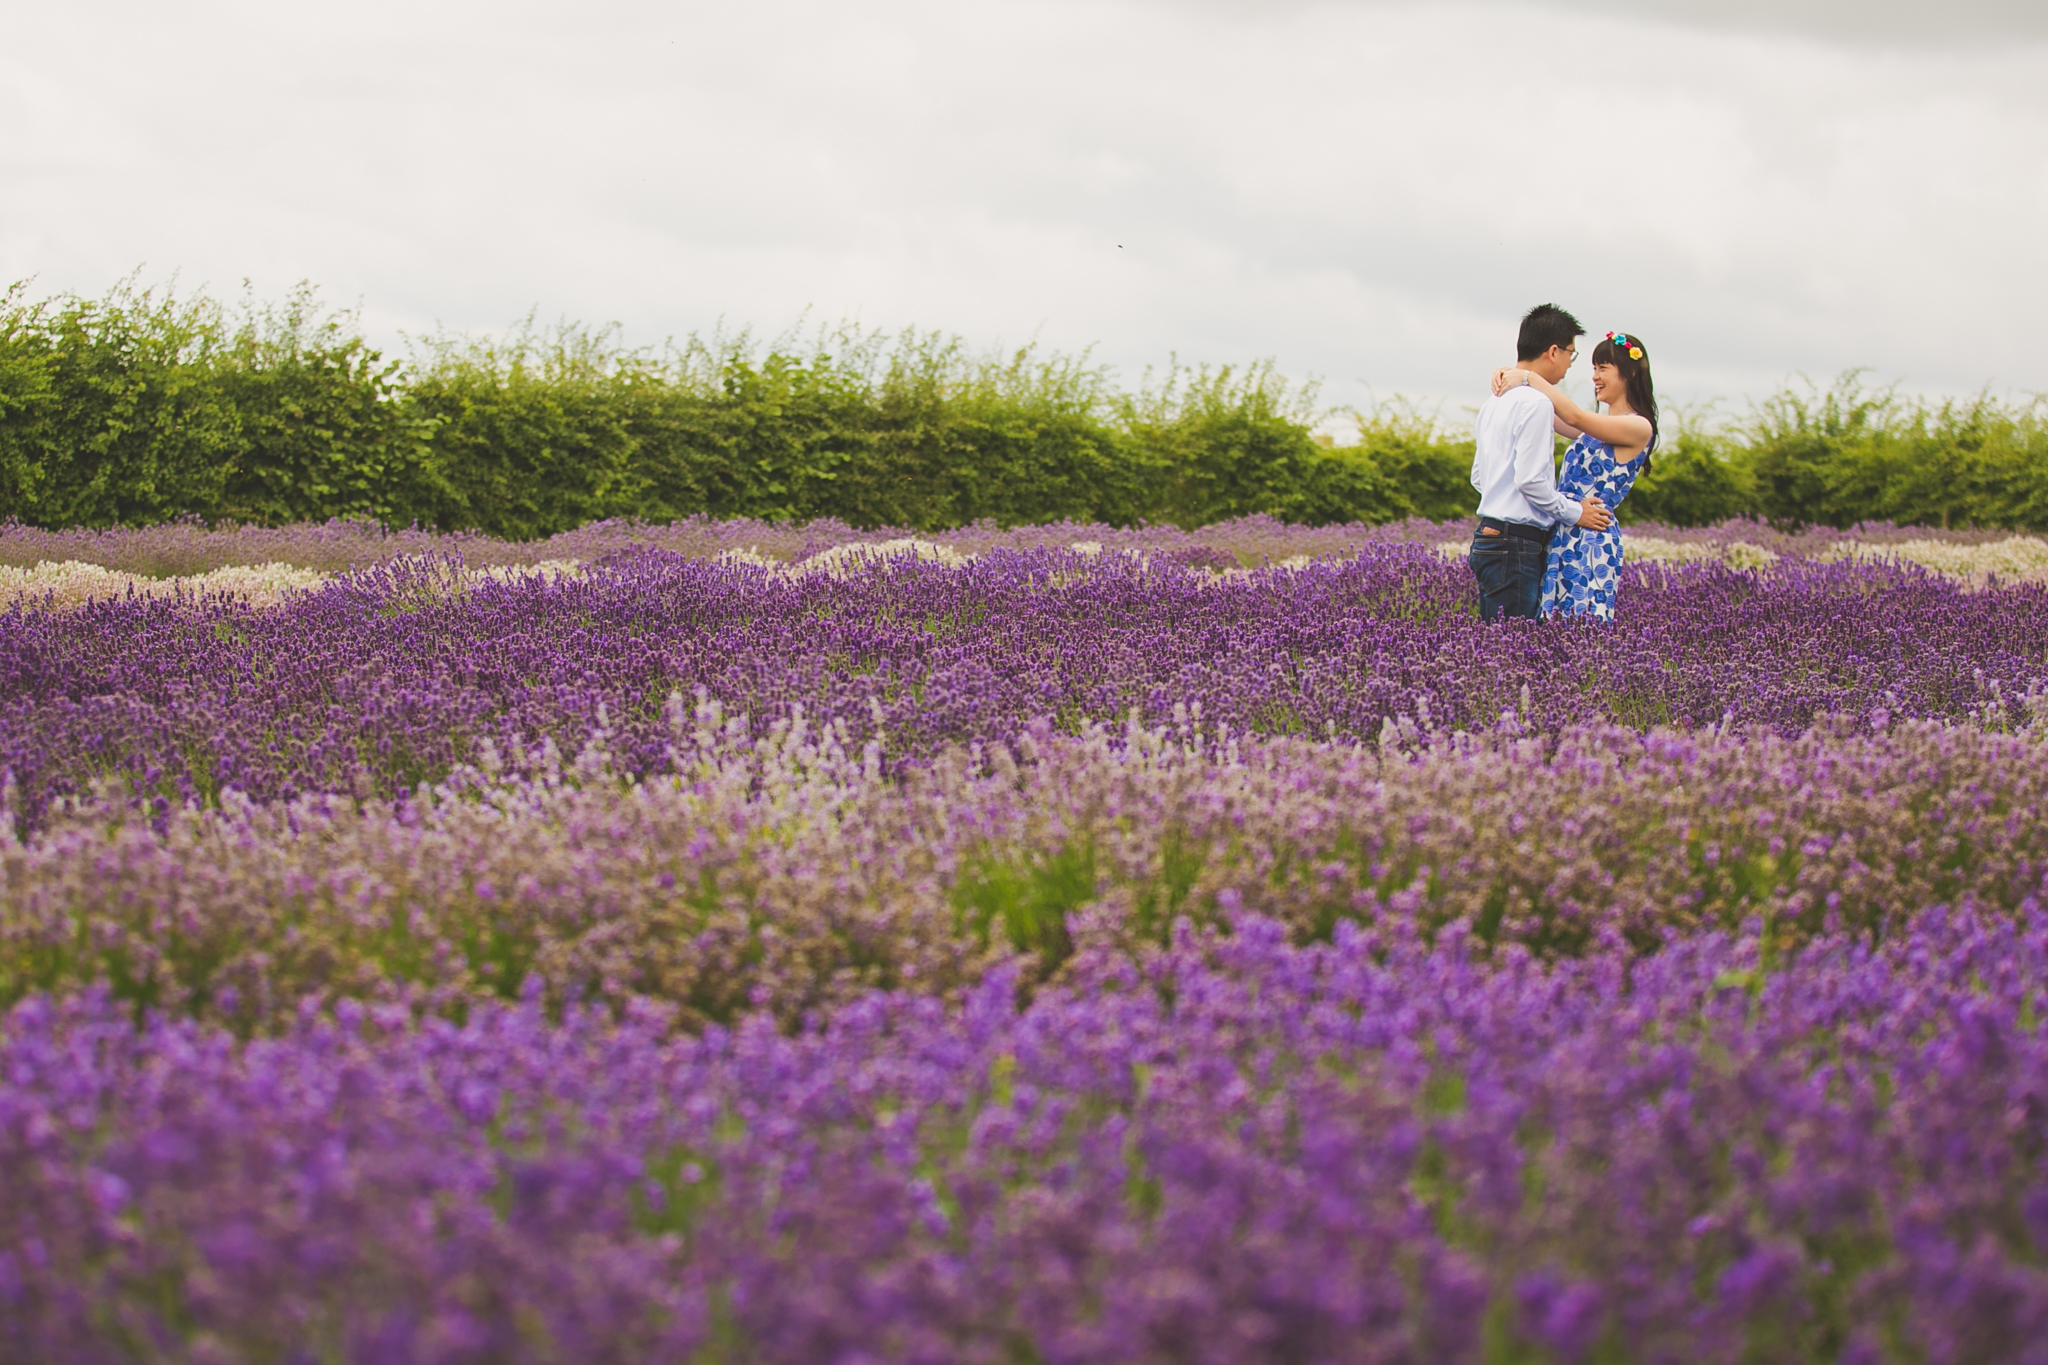 Lavender fields pre wedding photography in the Cotswolds UK countryside